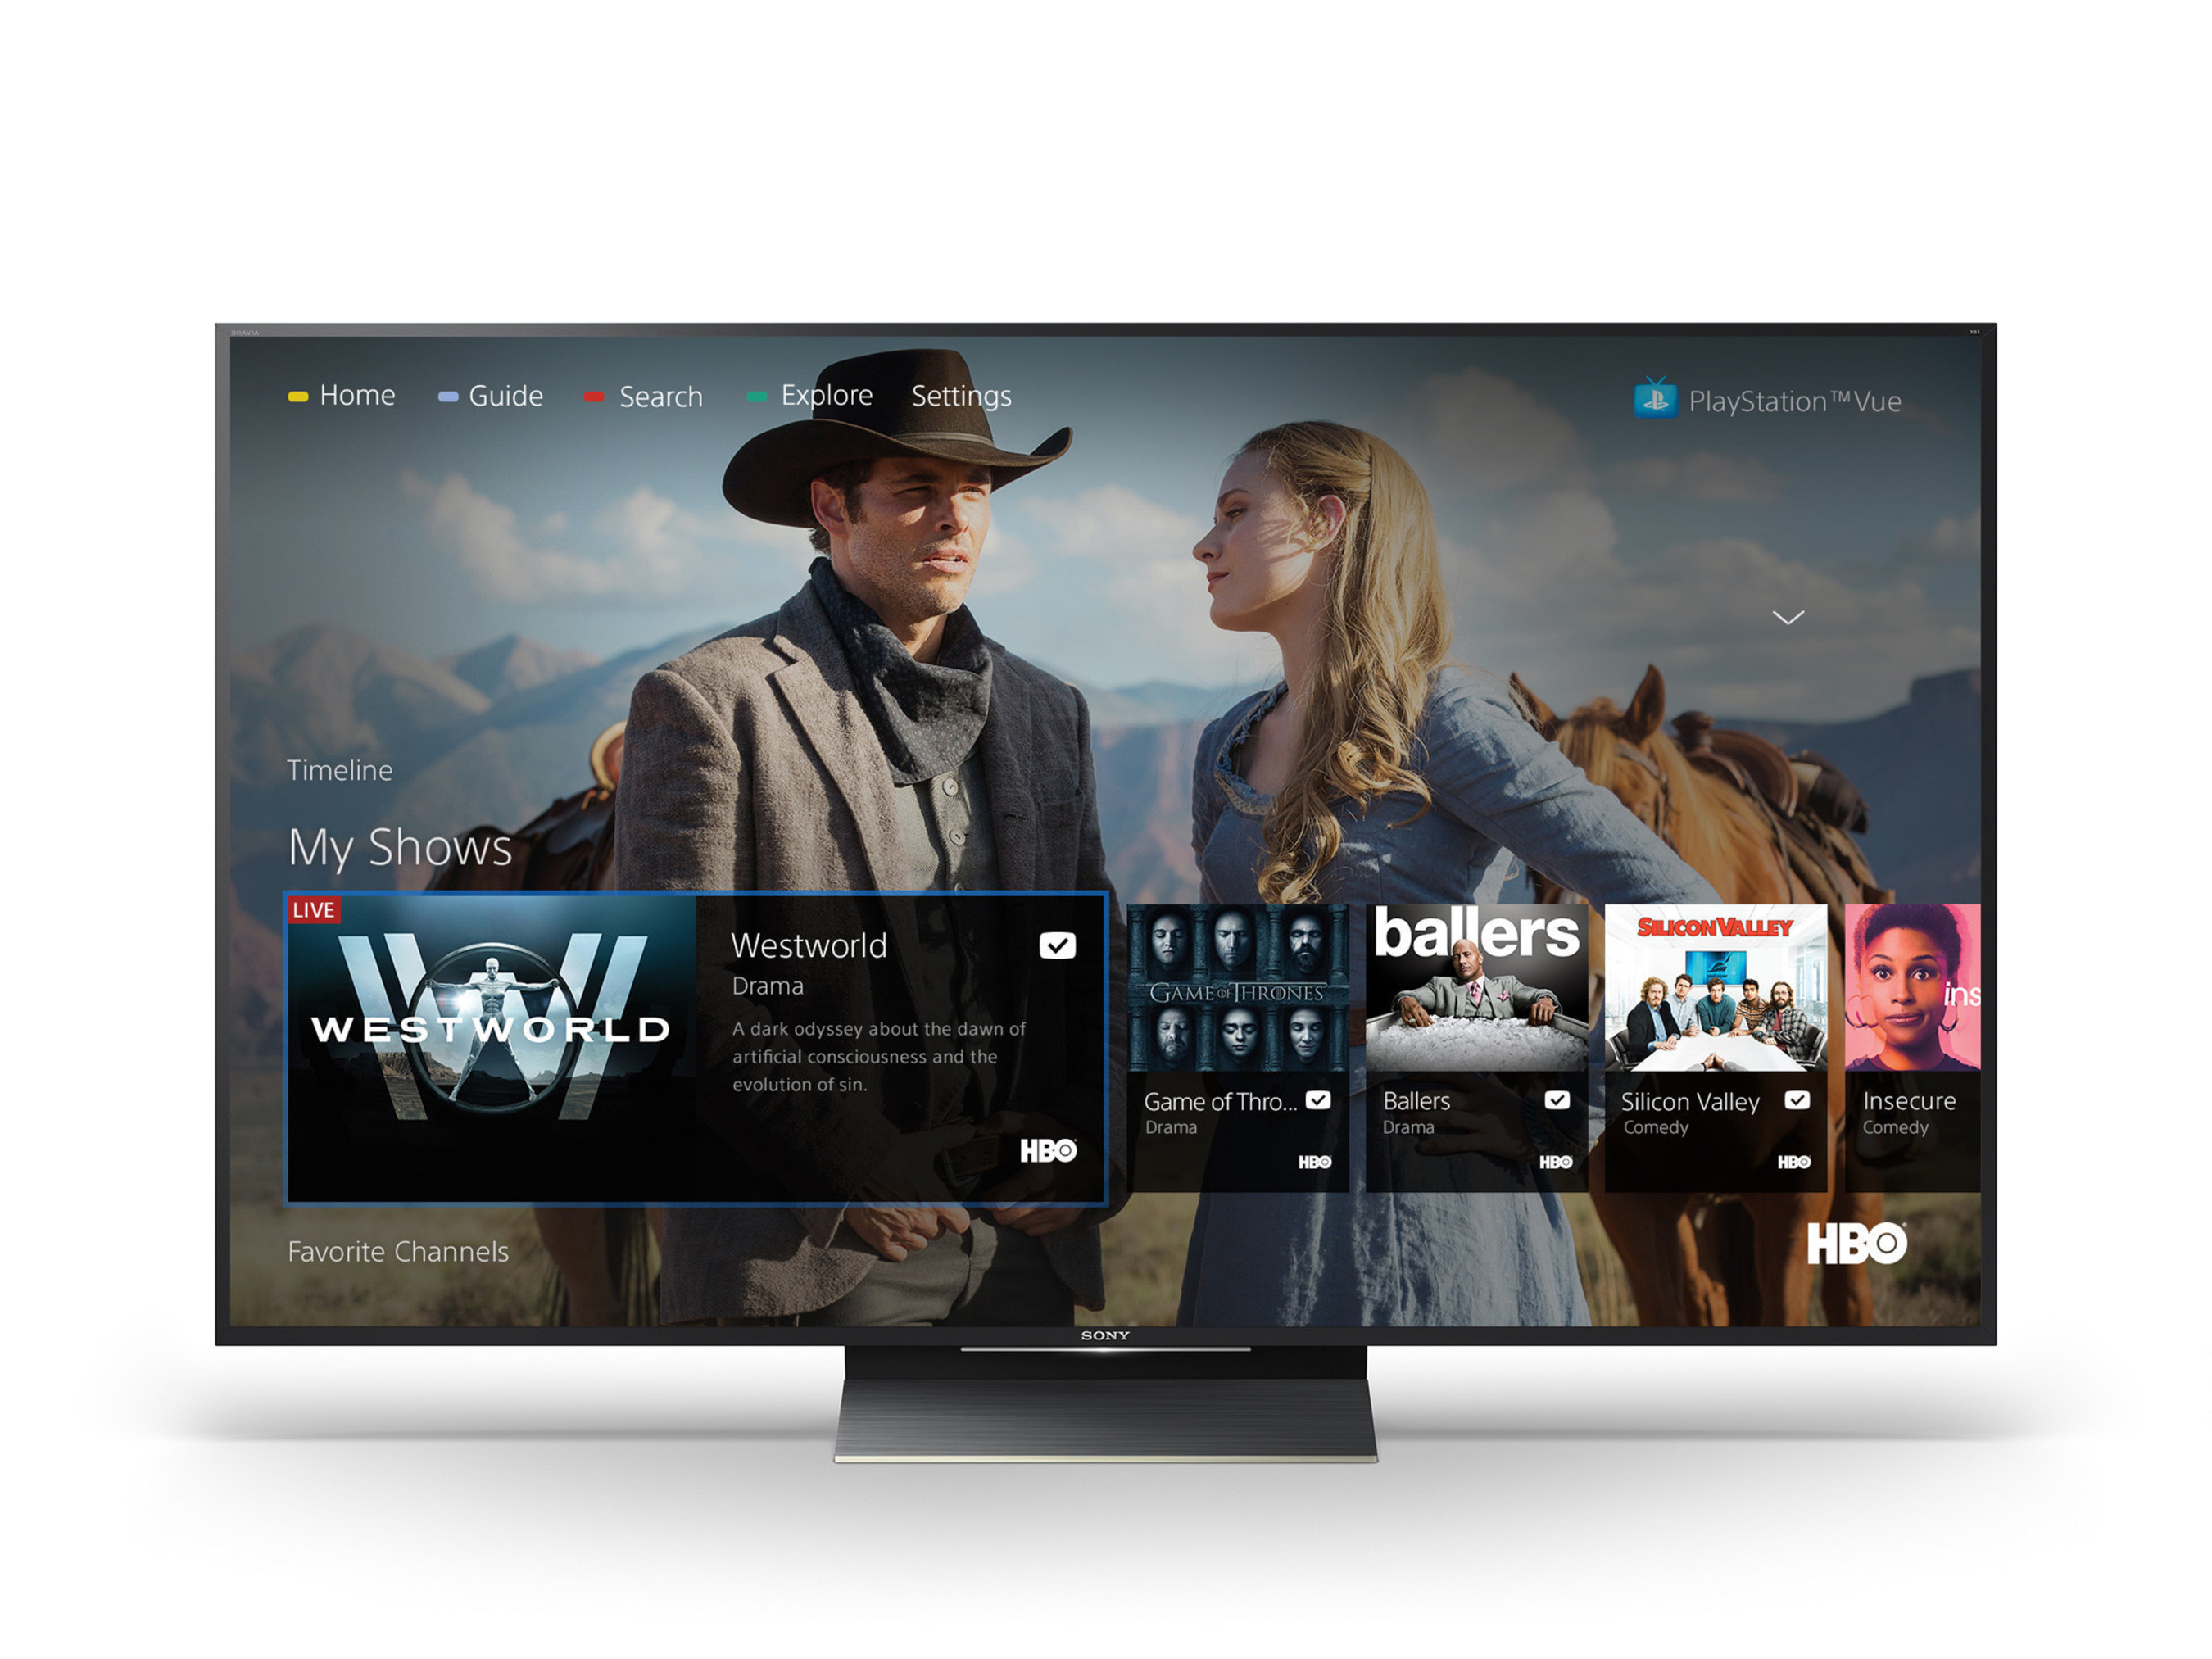 PlayStation Vue Now Available on Sony's Android TVs